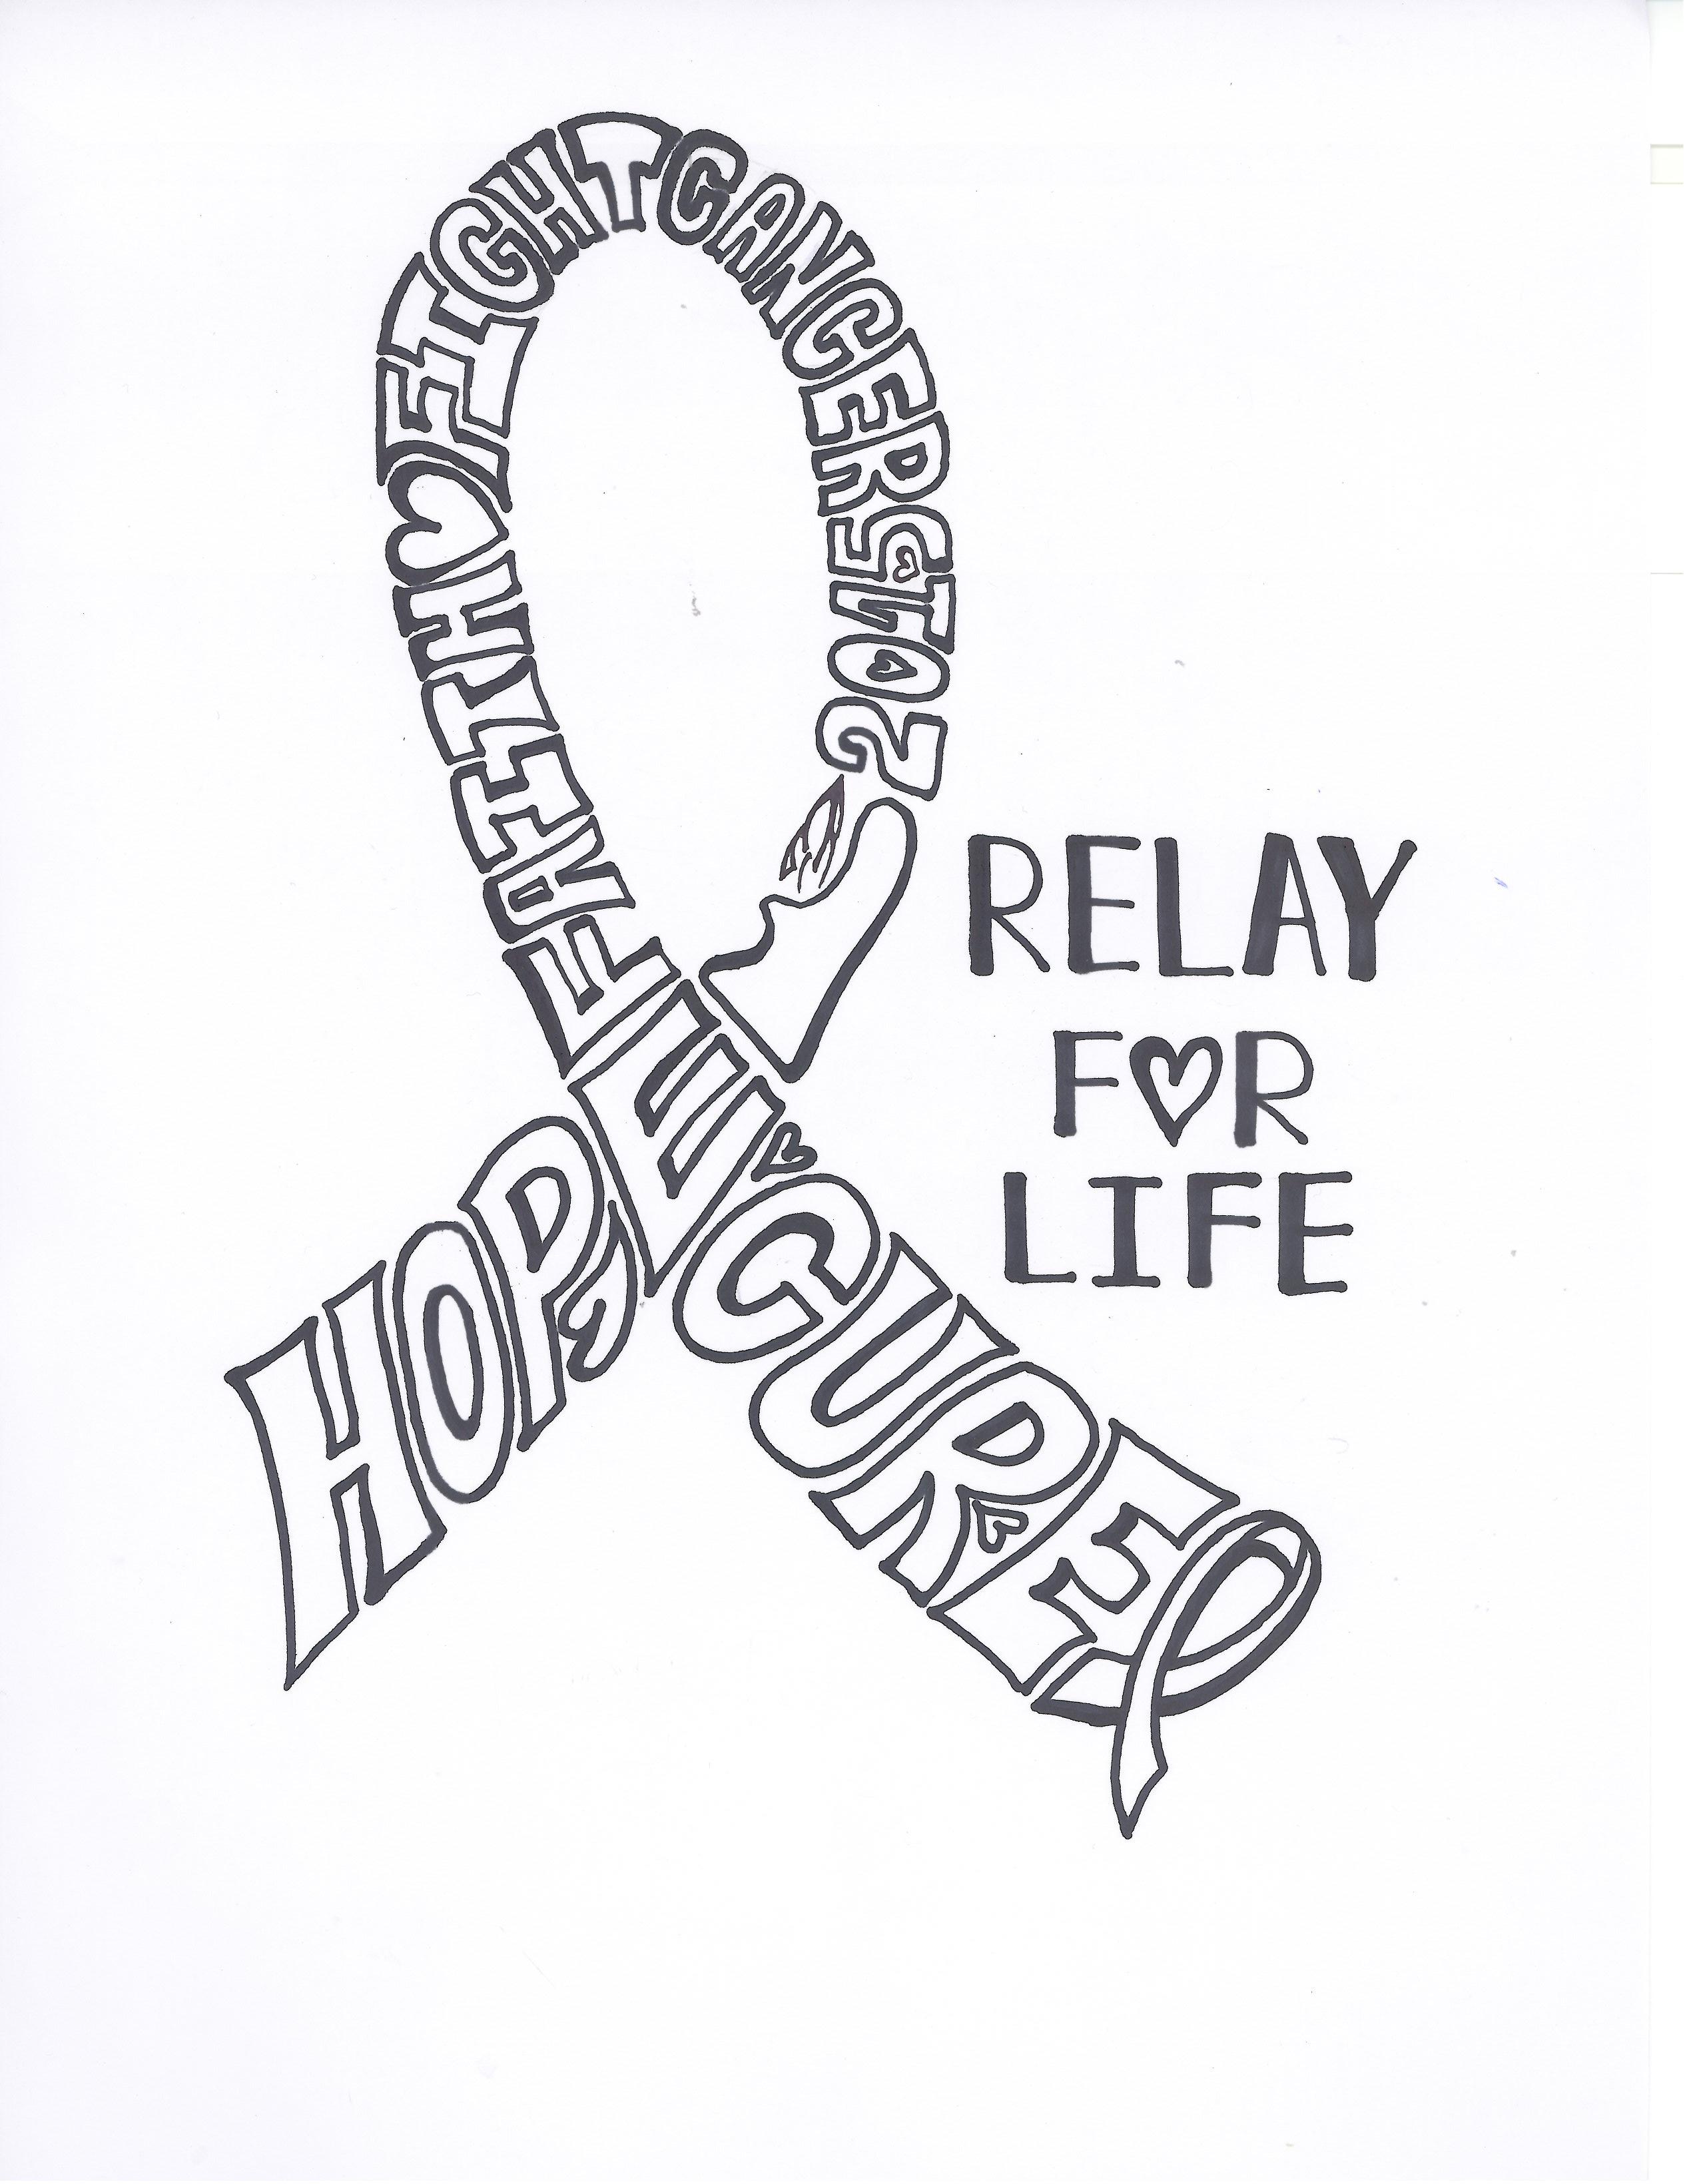 Relay for life team holds ribbons week fundraiser the for Relay for life t shirt designs